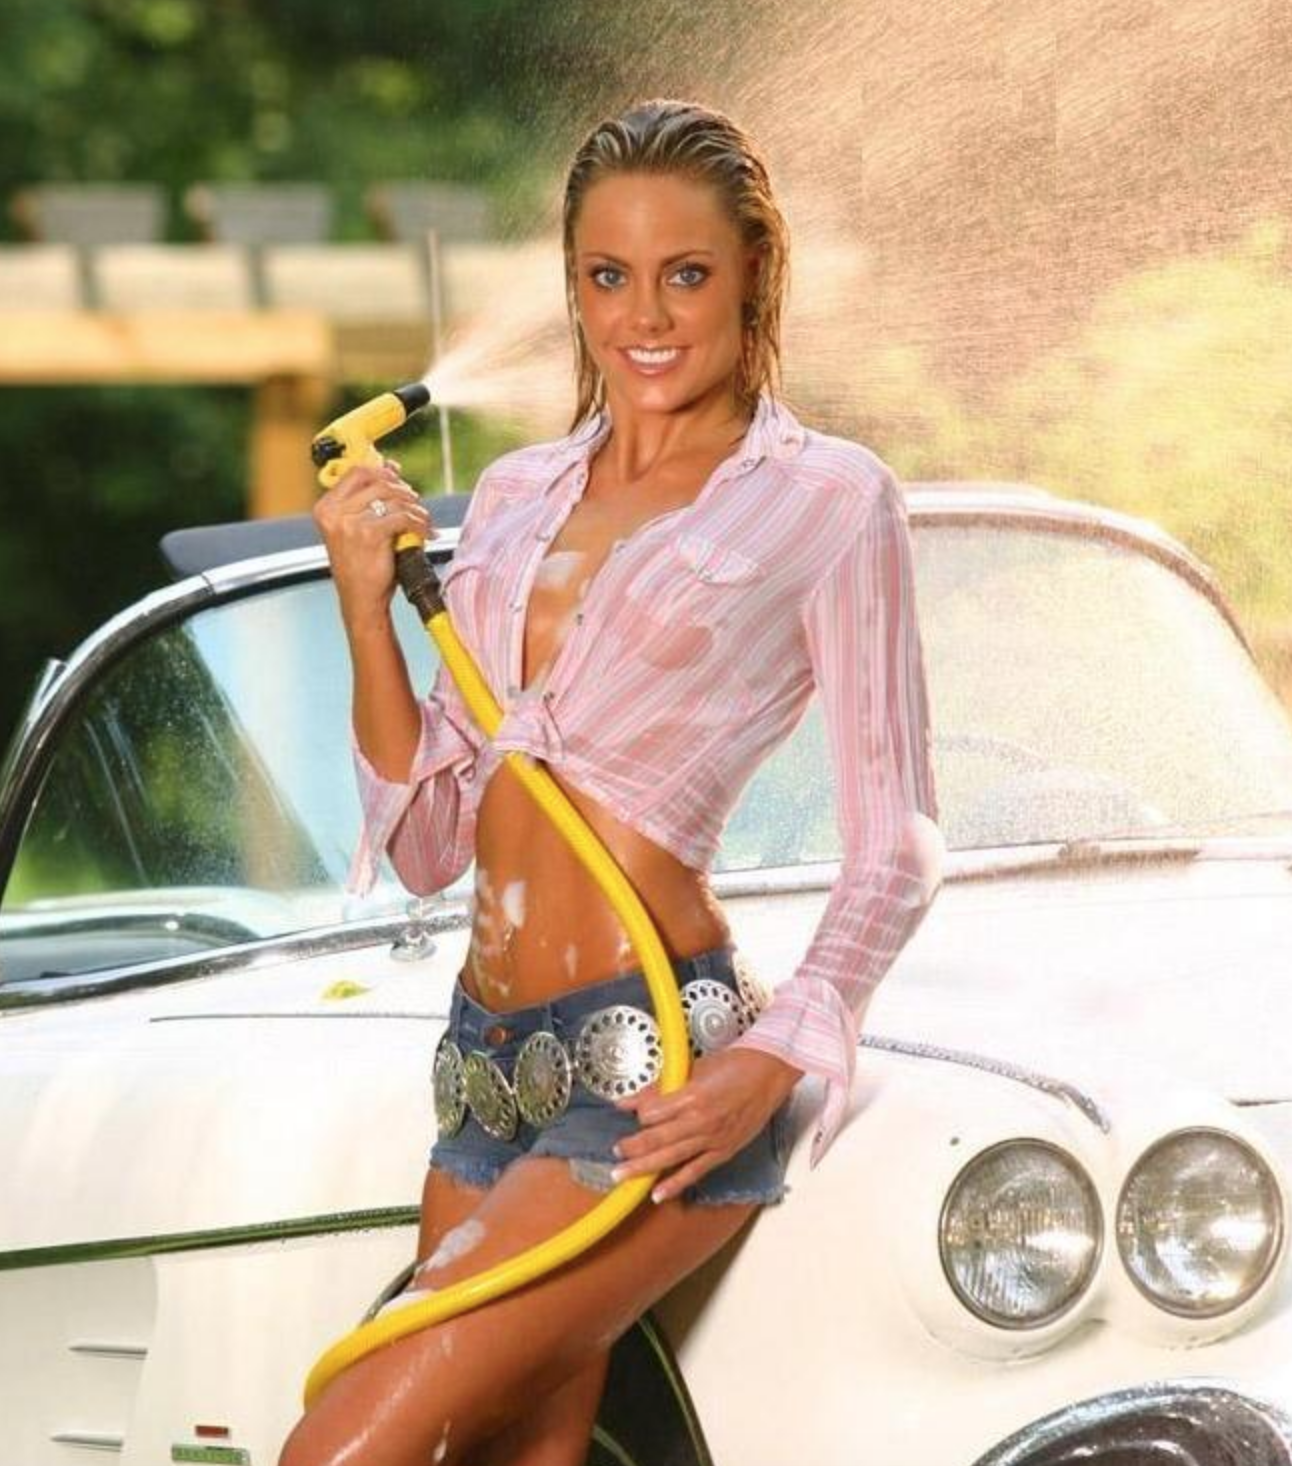 jean skirt washing white car with yellow hose